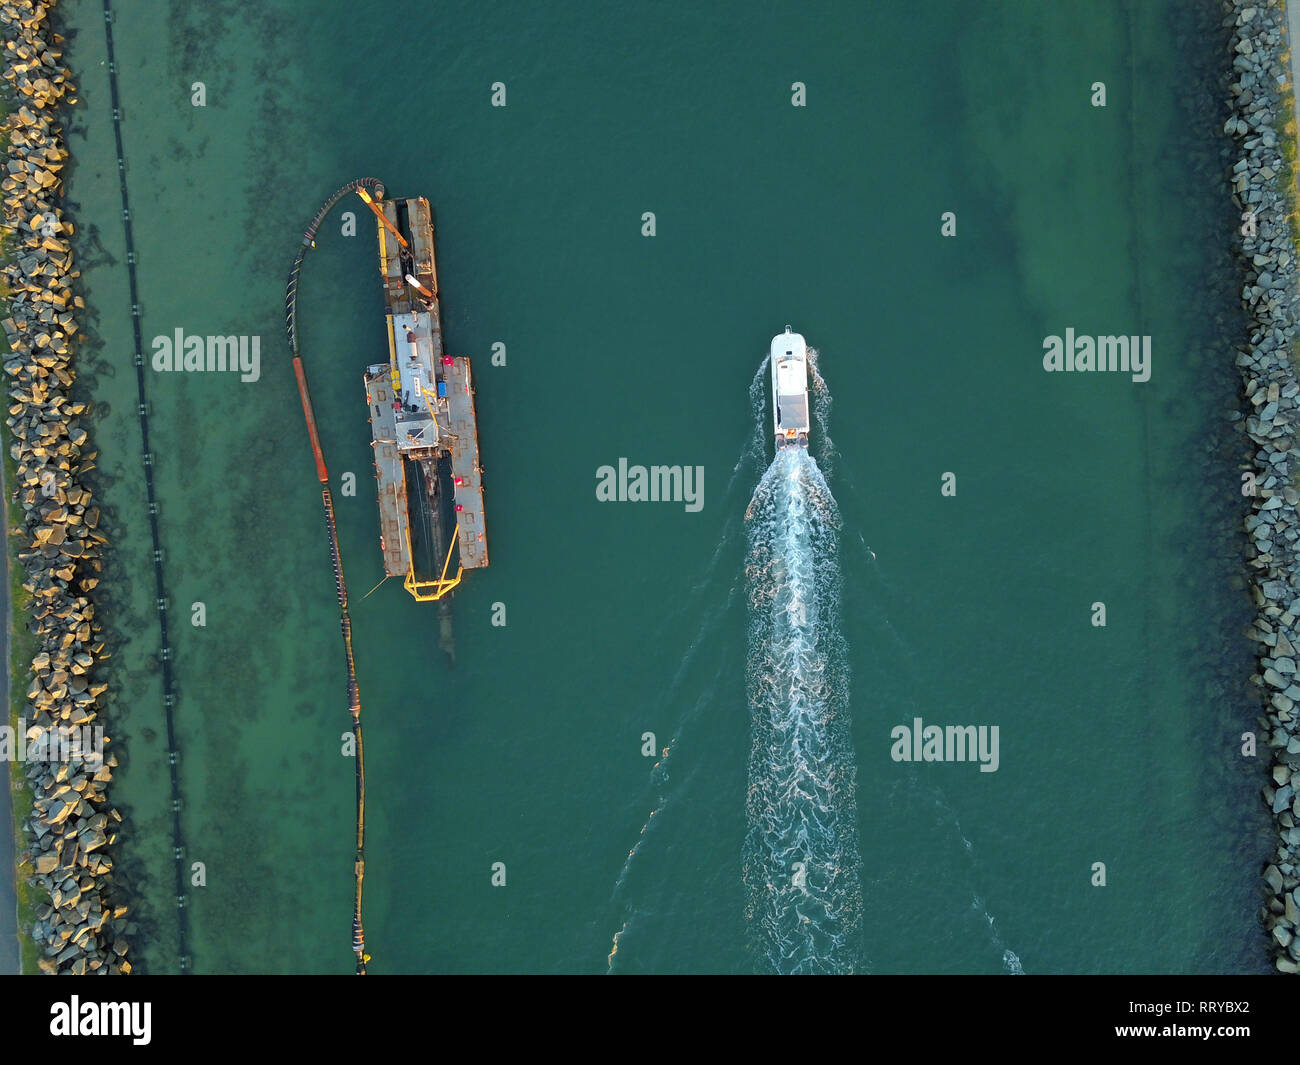 Dredging activity at sea canal from above in Queensland, Australia with speed boat with wake passing close by, and rocky shores. - Stock Image